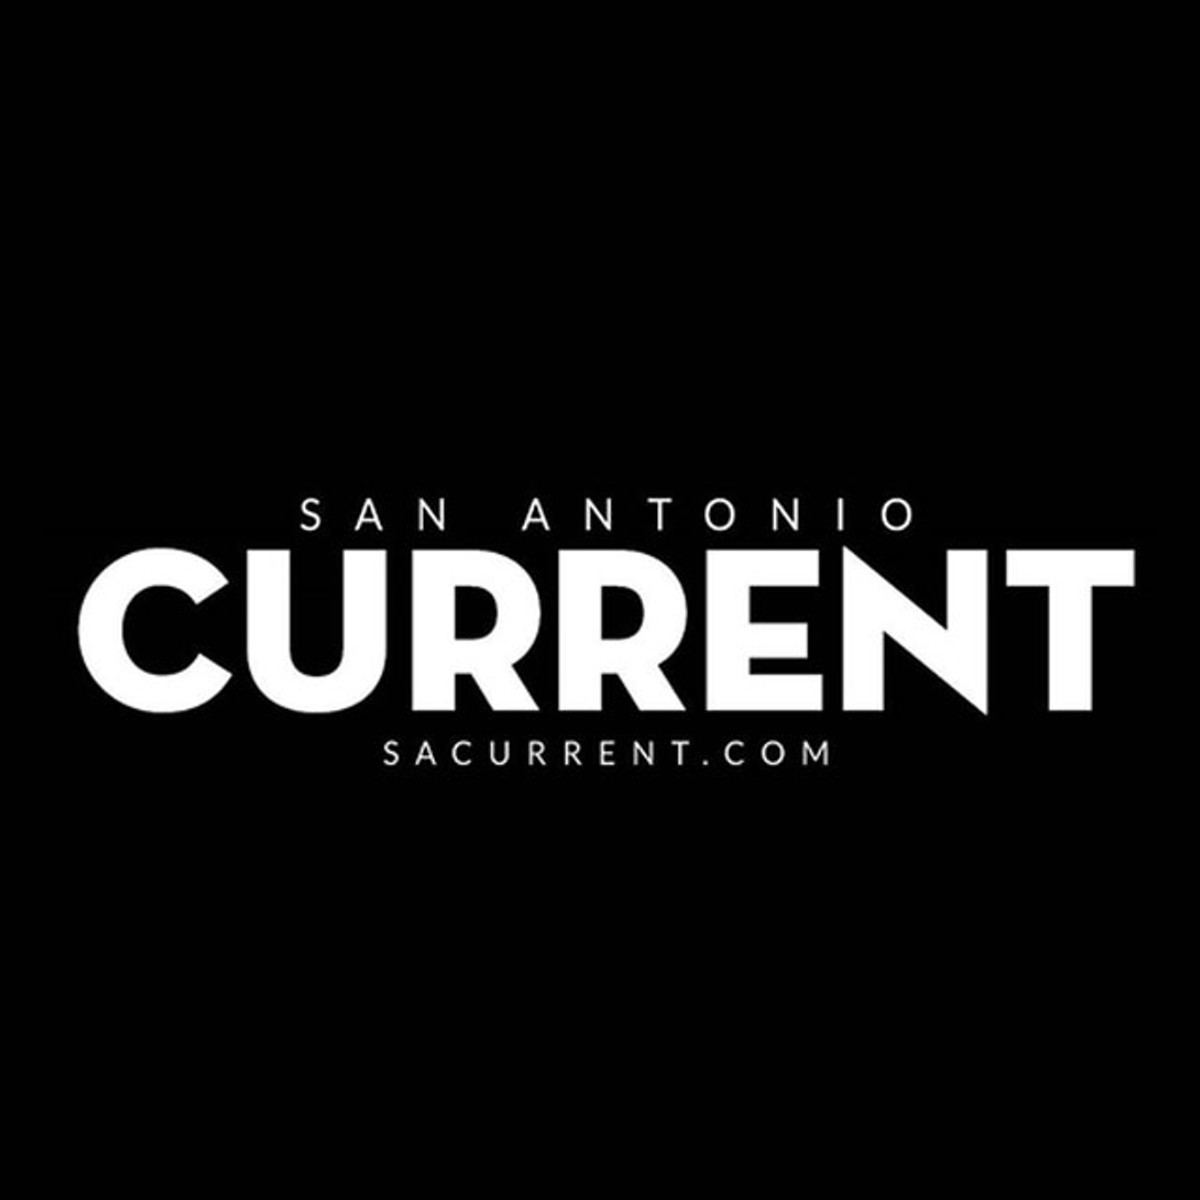 currentlogo_640x640.jpg